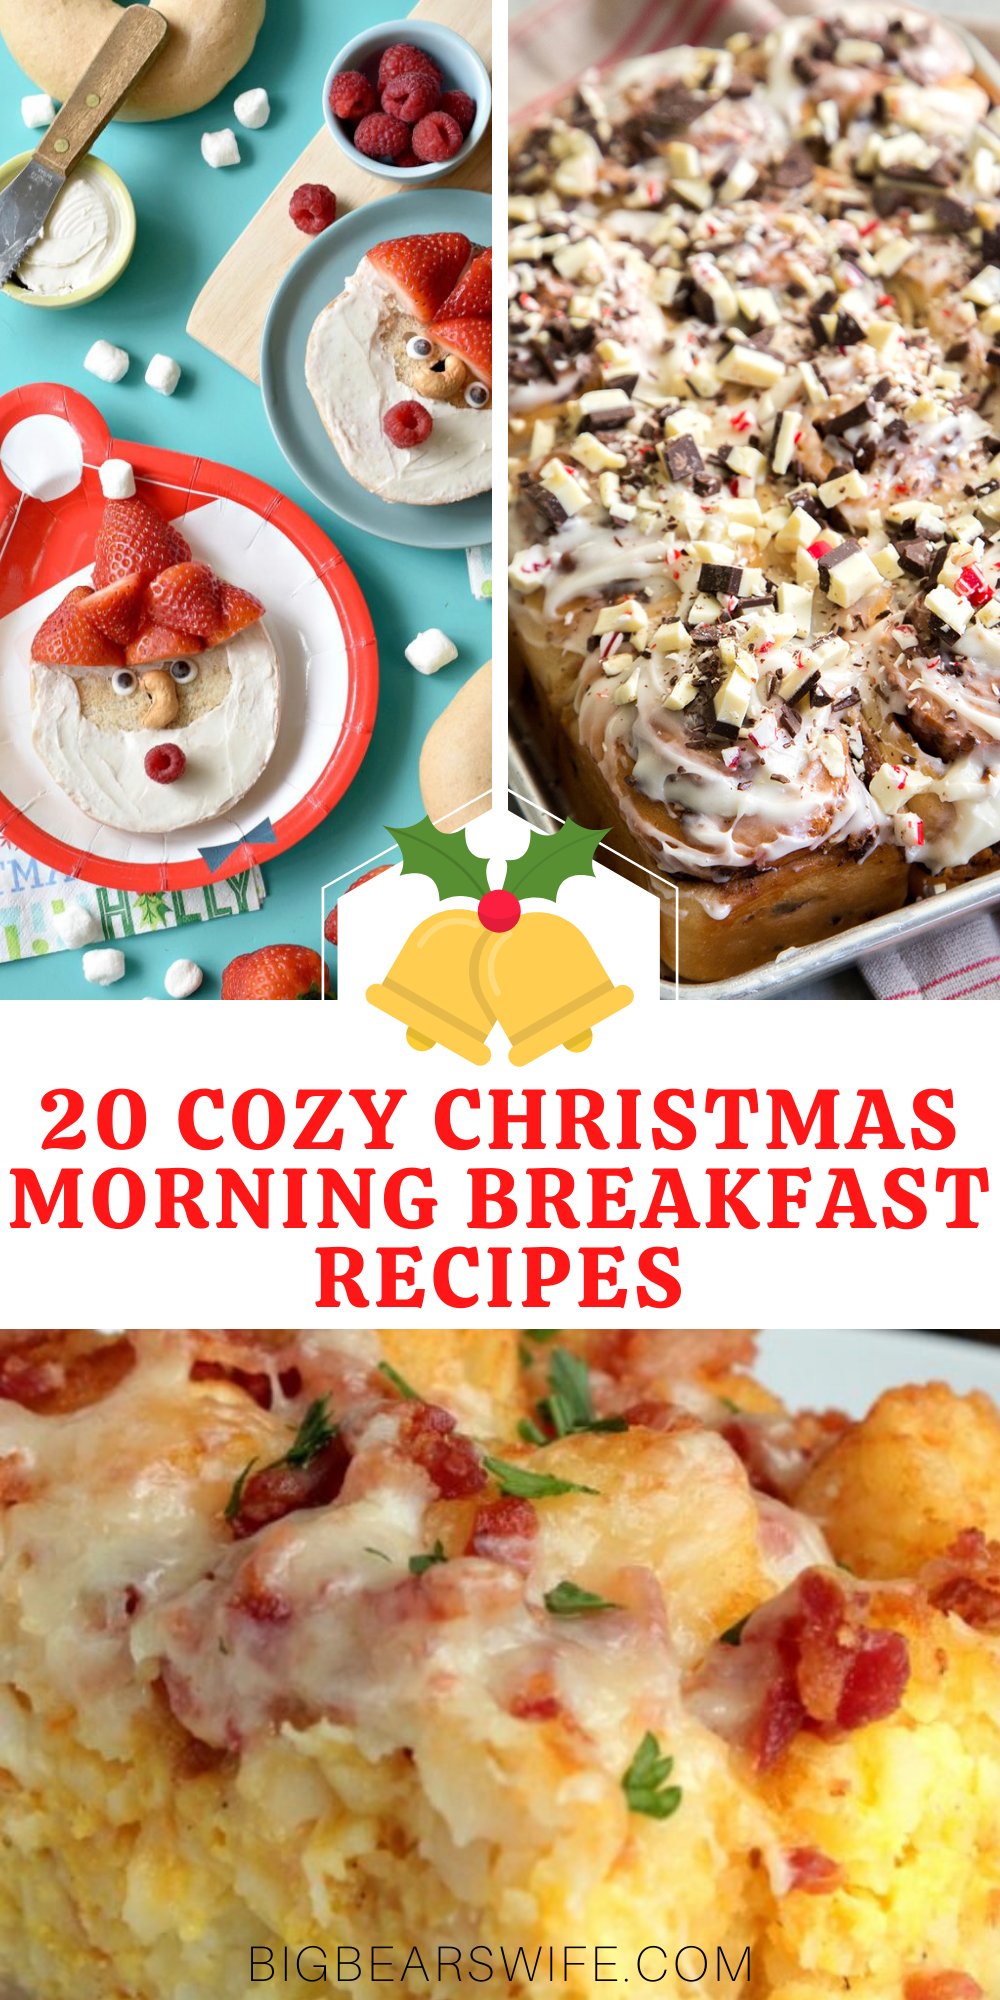 20 Cozy Christmas Morning Breakfast Recipes - We wish you a Merry Christmas, we wish you a Merry Christmas and a tasty morning breakfast! Keep the holiday spirit going on Christmas morning with one of these 20 Cozy Christmas Morning Breakfast Recipes! via @bigbearswife